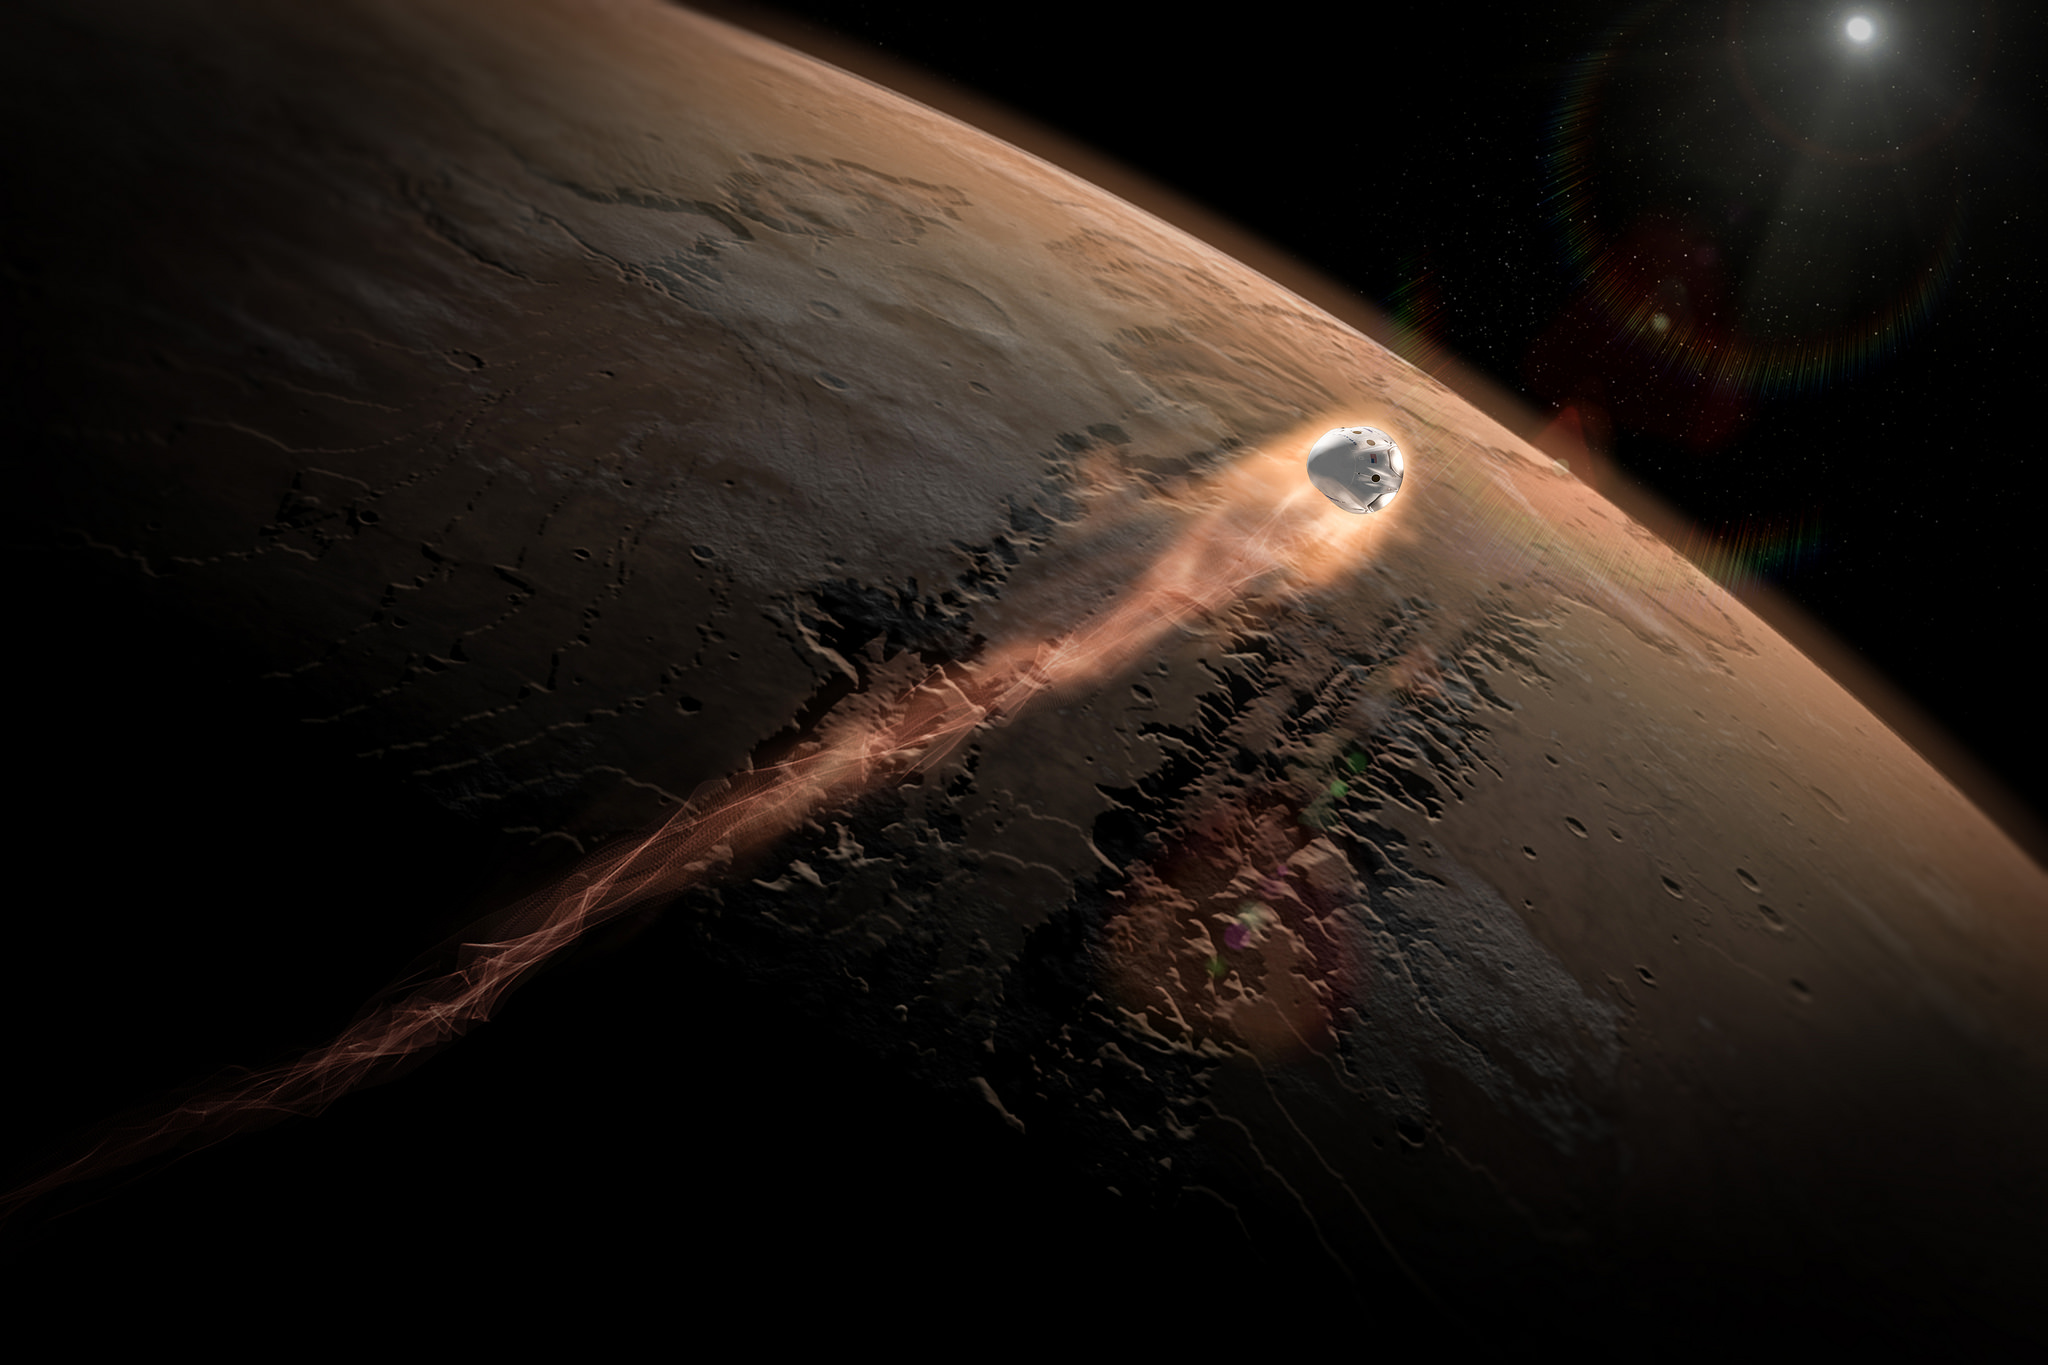 SpaceX's Red Dragon concept would launched a Dragon-based spacecraft to Mars and use the capsule's thrusters to make a landing. This artist's illustration shows how Dragon could enter Mars' atmosphere. SpaceX has successfully returned Dragon capsules to E